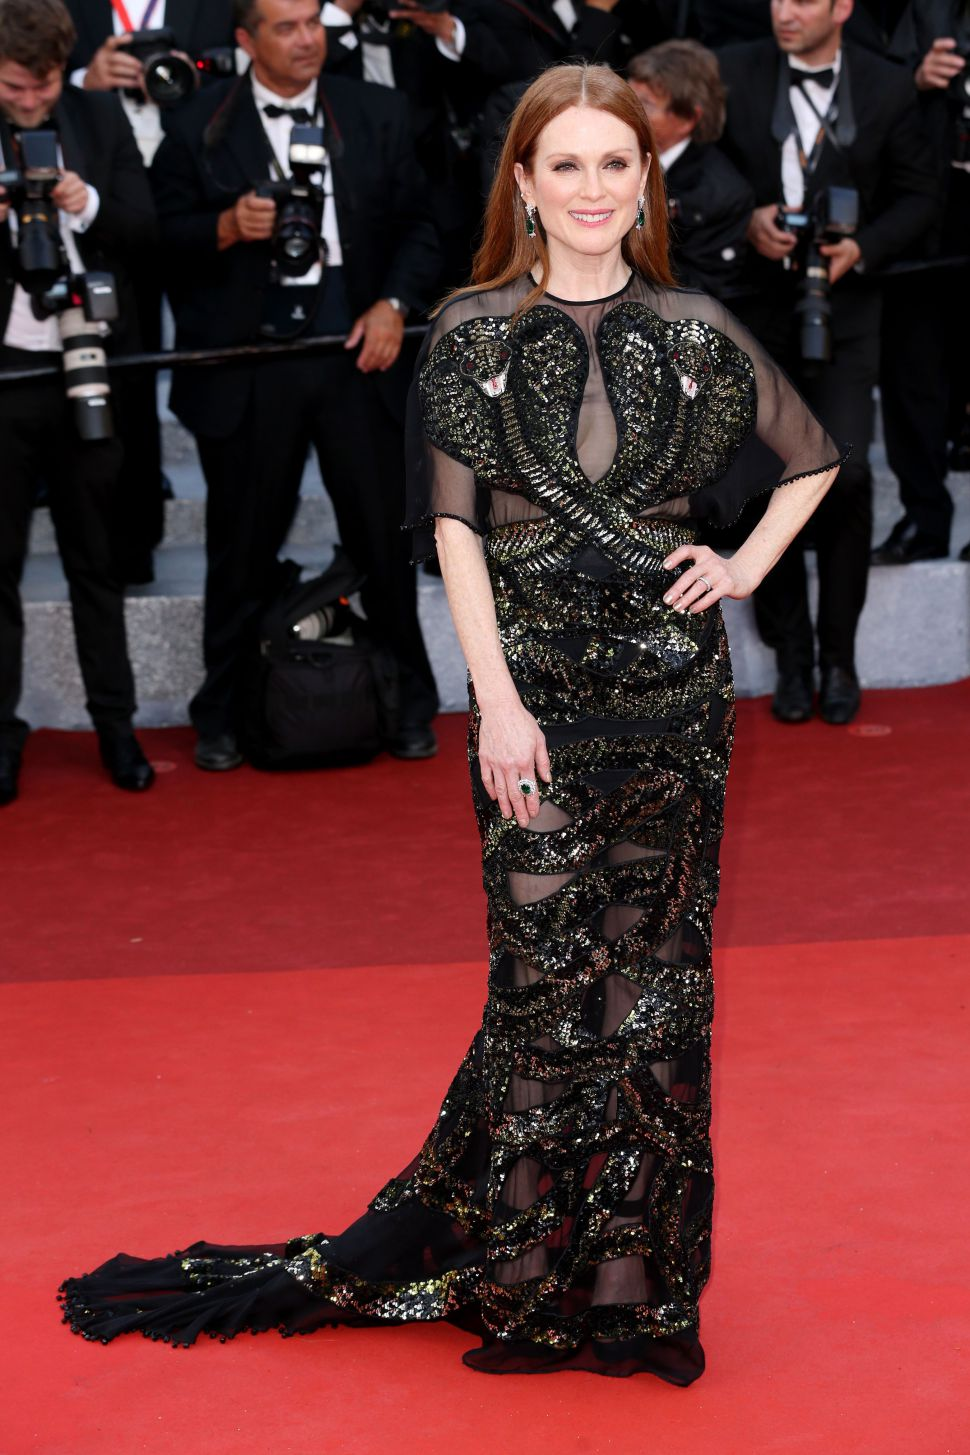 Mandatory Credit: Photo by James Gourley/REX/Shutterstock (5682158ae) Julianne Moore'Cafe Society' premiere and opening ceremony, 69th Cannes Film Festival, France - 11 May 2016